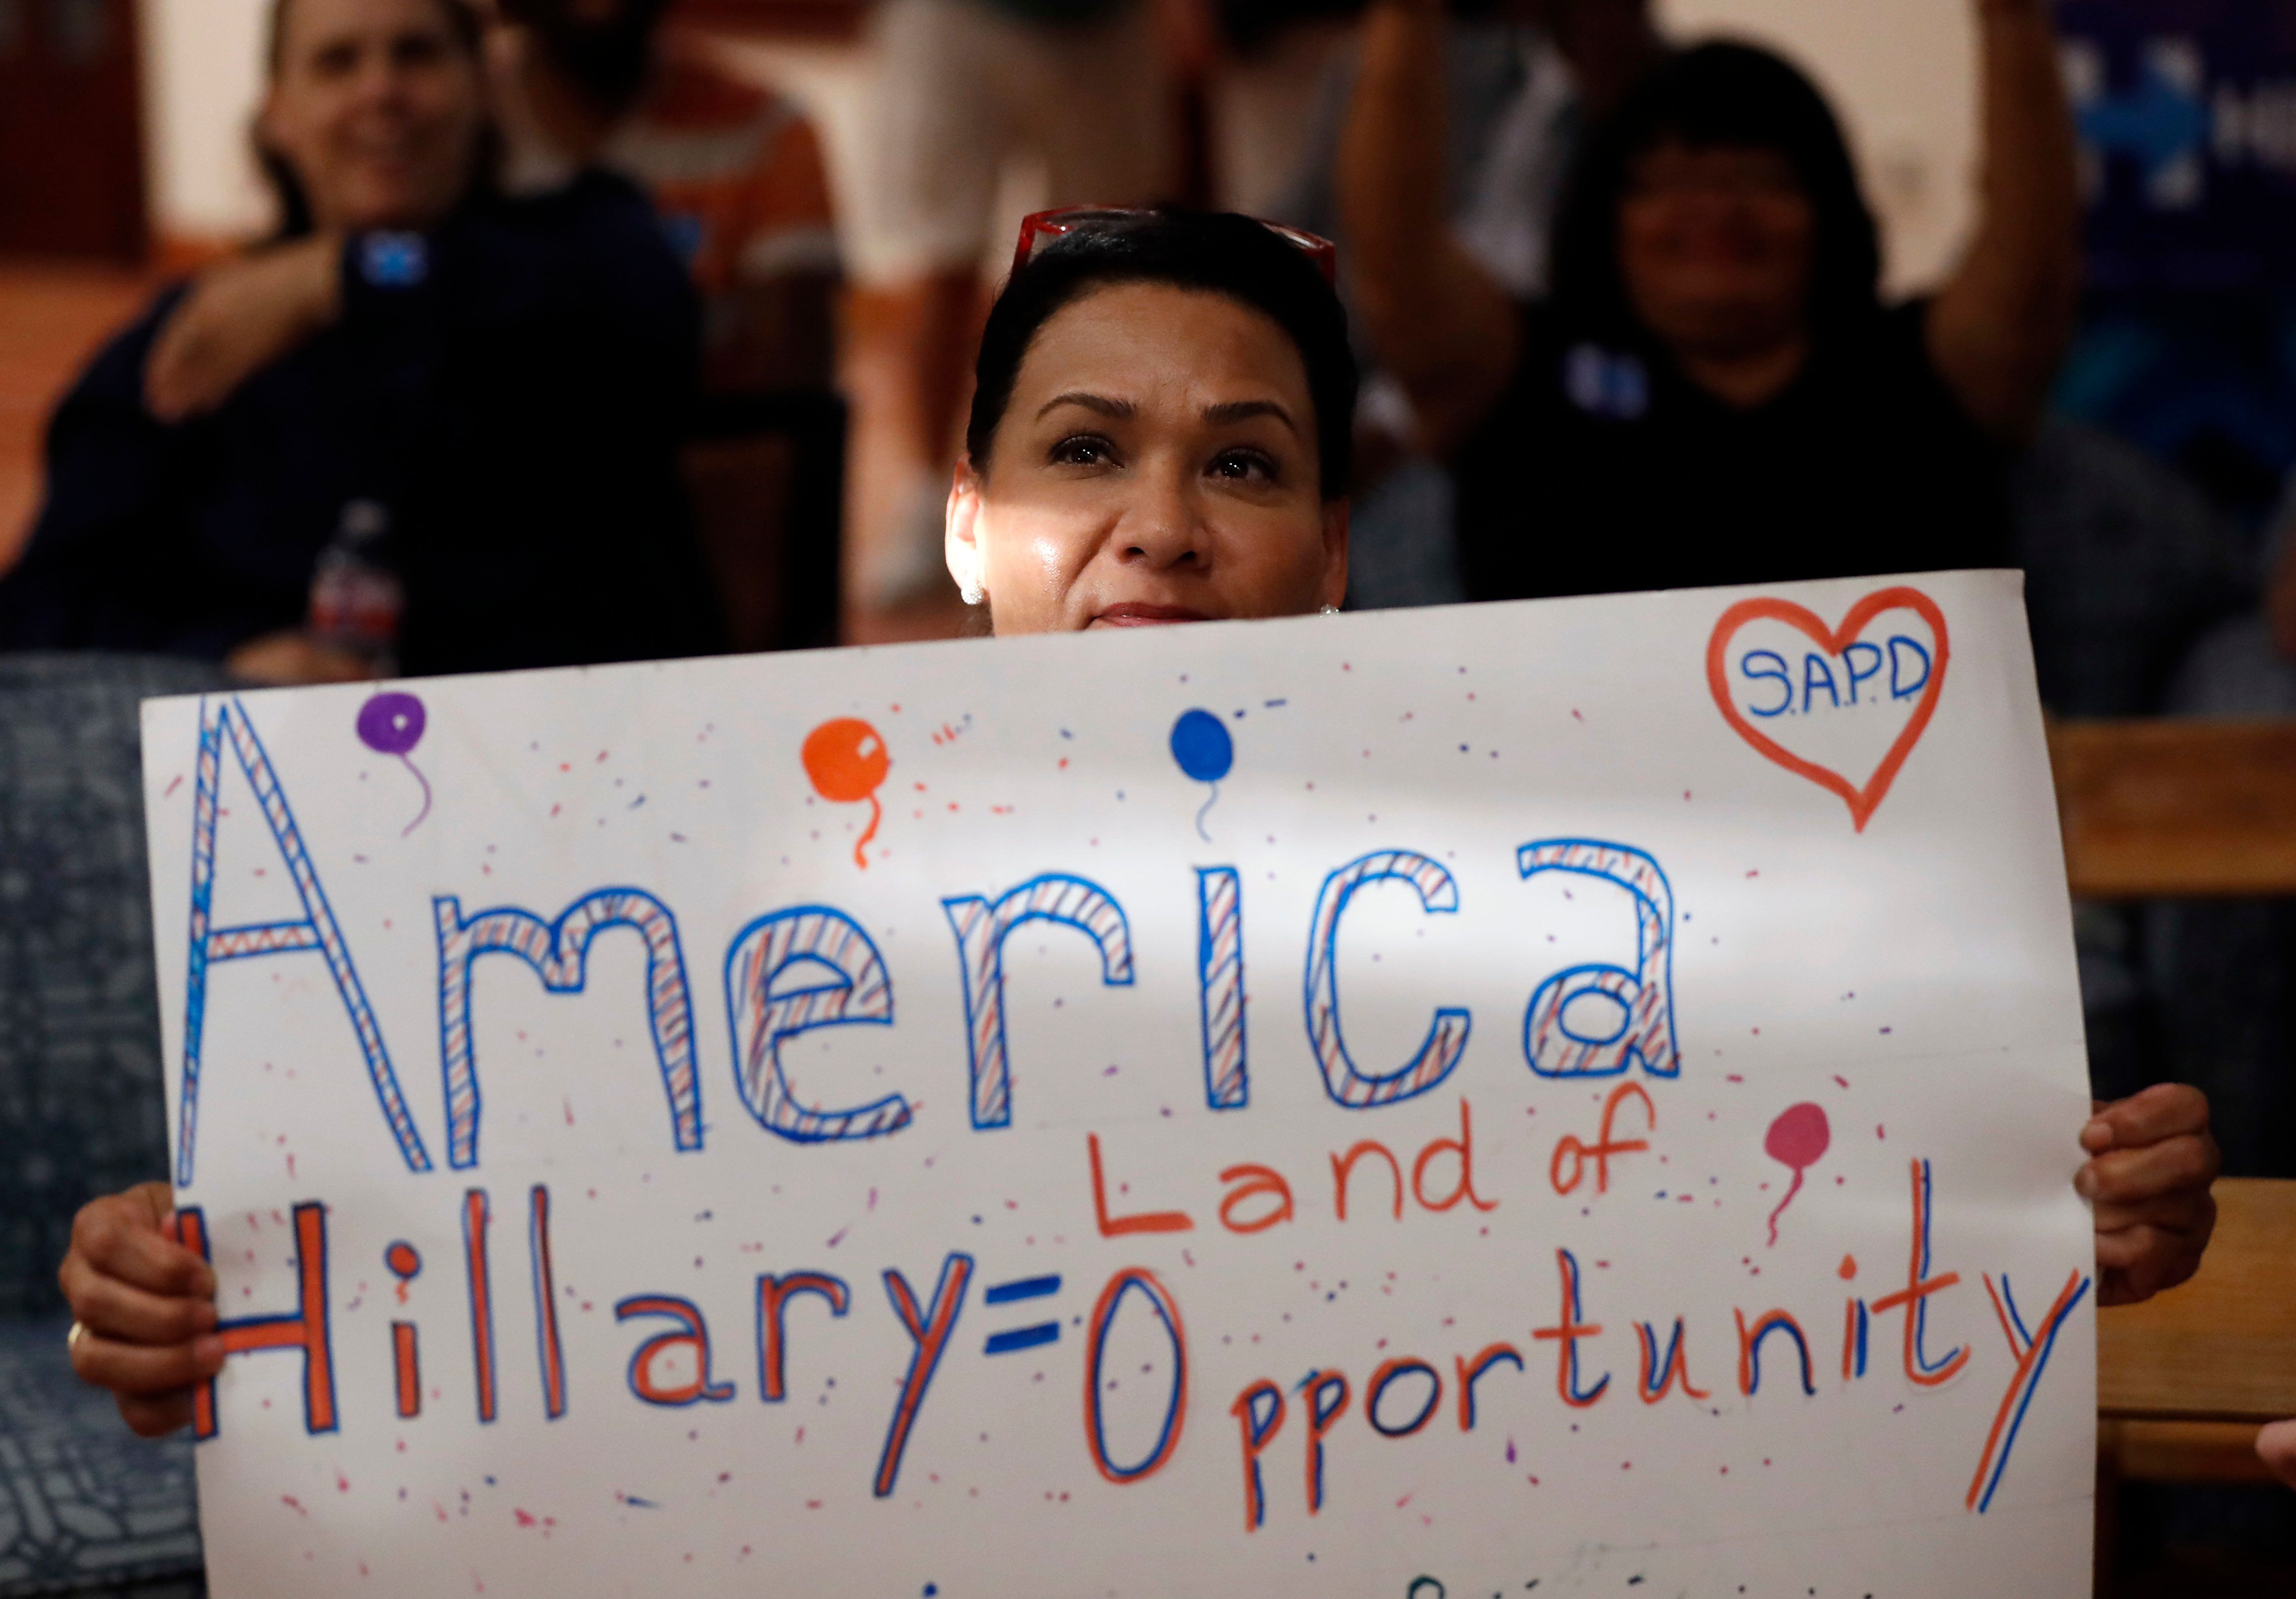 """ADVANCE FOR USE MONDAY, AUG. 8, 2016 AND THEREAFTER-A supporter of Democratic presidential candidate Hillary Clinton attends a Democratic National Convention watch party in San Antonio on Tuesday, July 26, 2016. Crystal Zermeno, director of special projects for the Democratic field organization Texas Organizing Project, says, """"For the past 15 to 20 years, weve been focusing on moving swing white voters. If you talk to Hispanic voters, they say, No one has asked me to vote'... There has not been a focus and real expenditures historically on unlikely voters, and you cant just expect non-voters to go out in great numbers ... without anyone encouraging them."""" (AP Photo/Eric Gay)"""